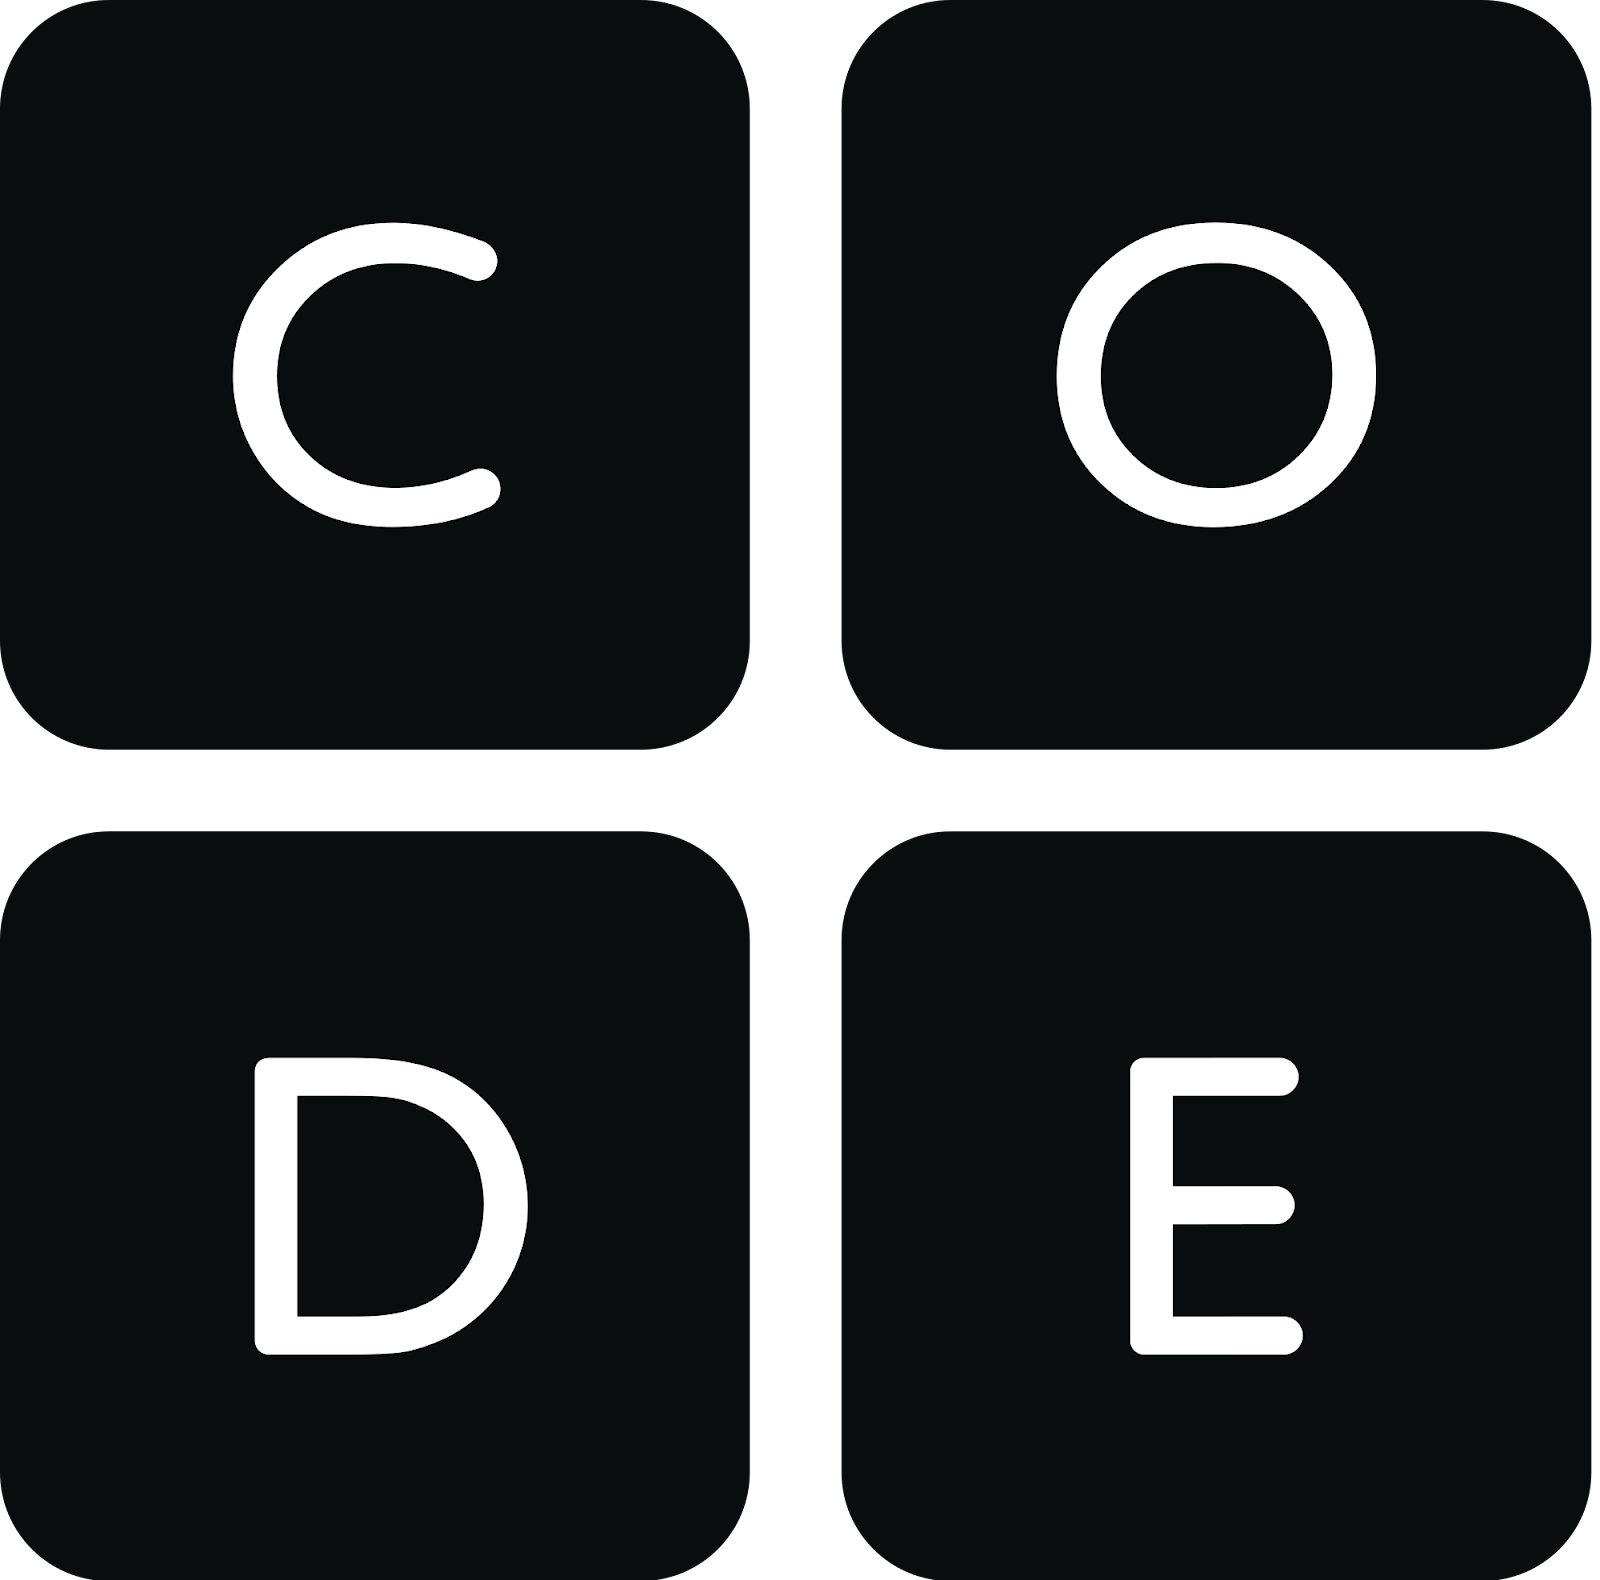 File:Code.org logo.svg - Wikimedia Commons